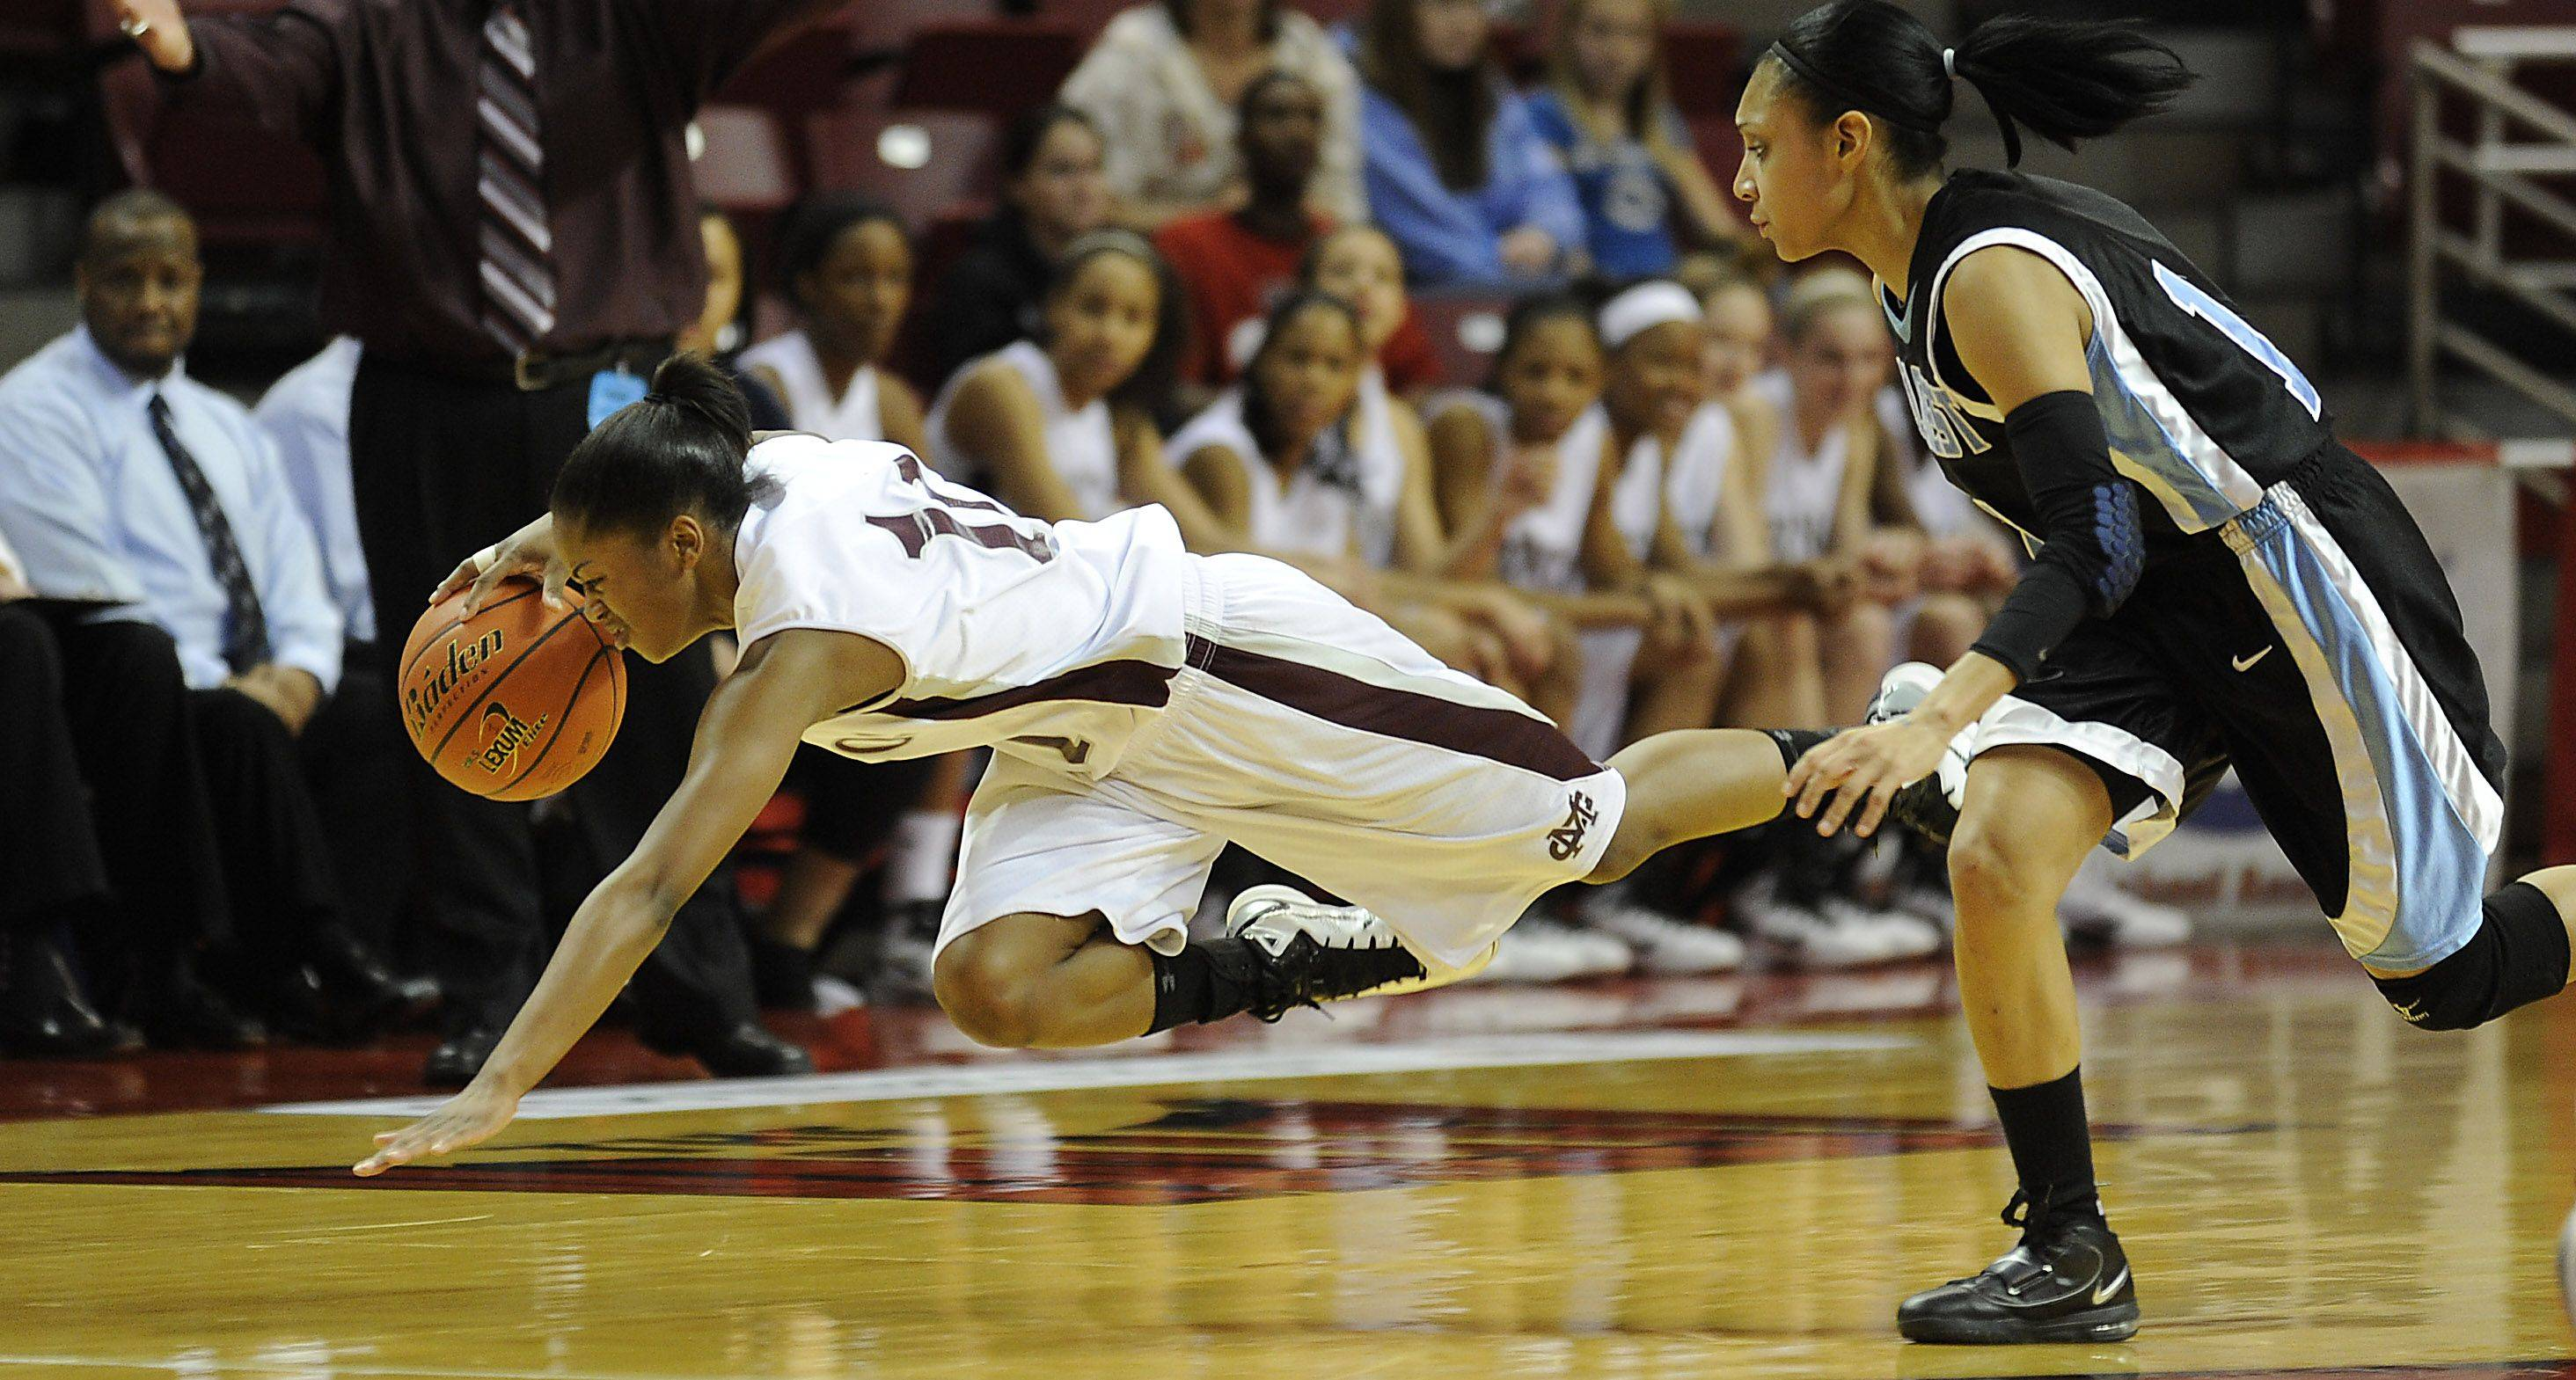 Montini's Whitney Holloway gets tripped up by Hillcrest's Karlisa Harris in the first half of Saturday's game in Normal.